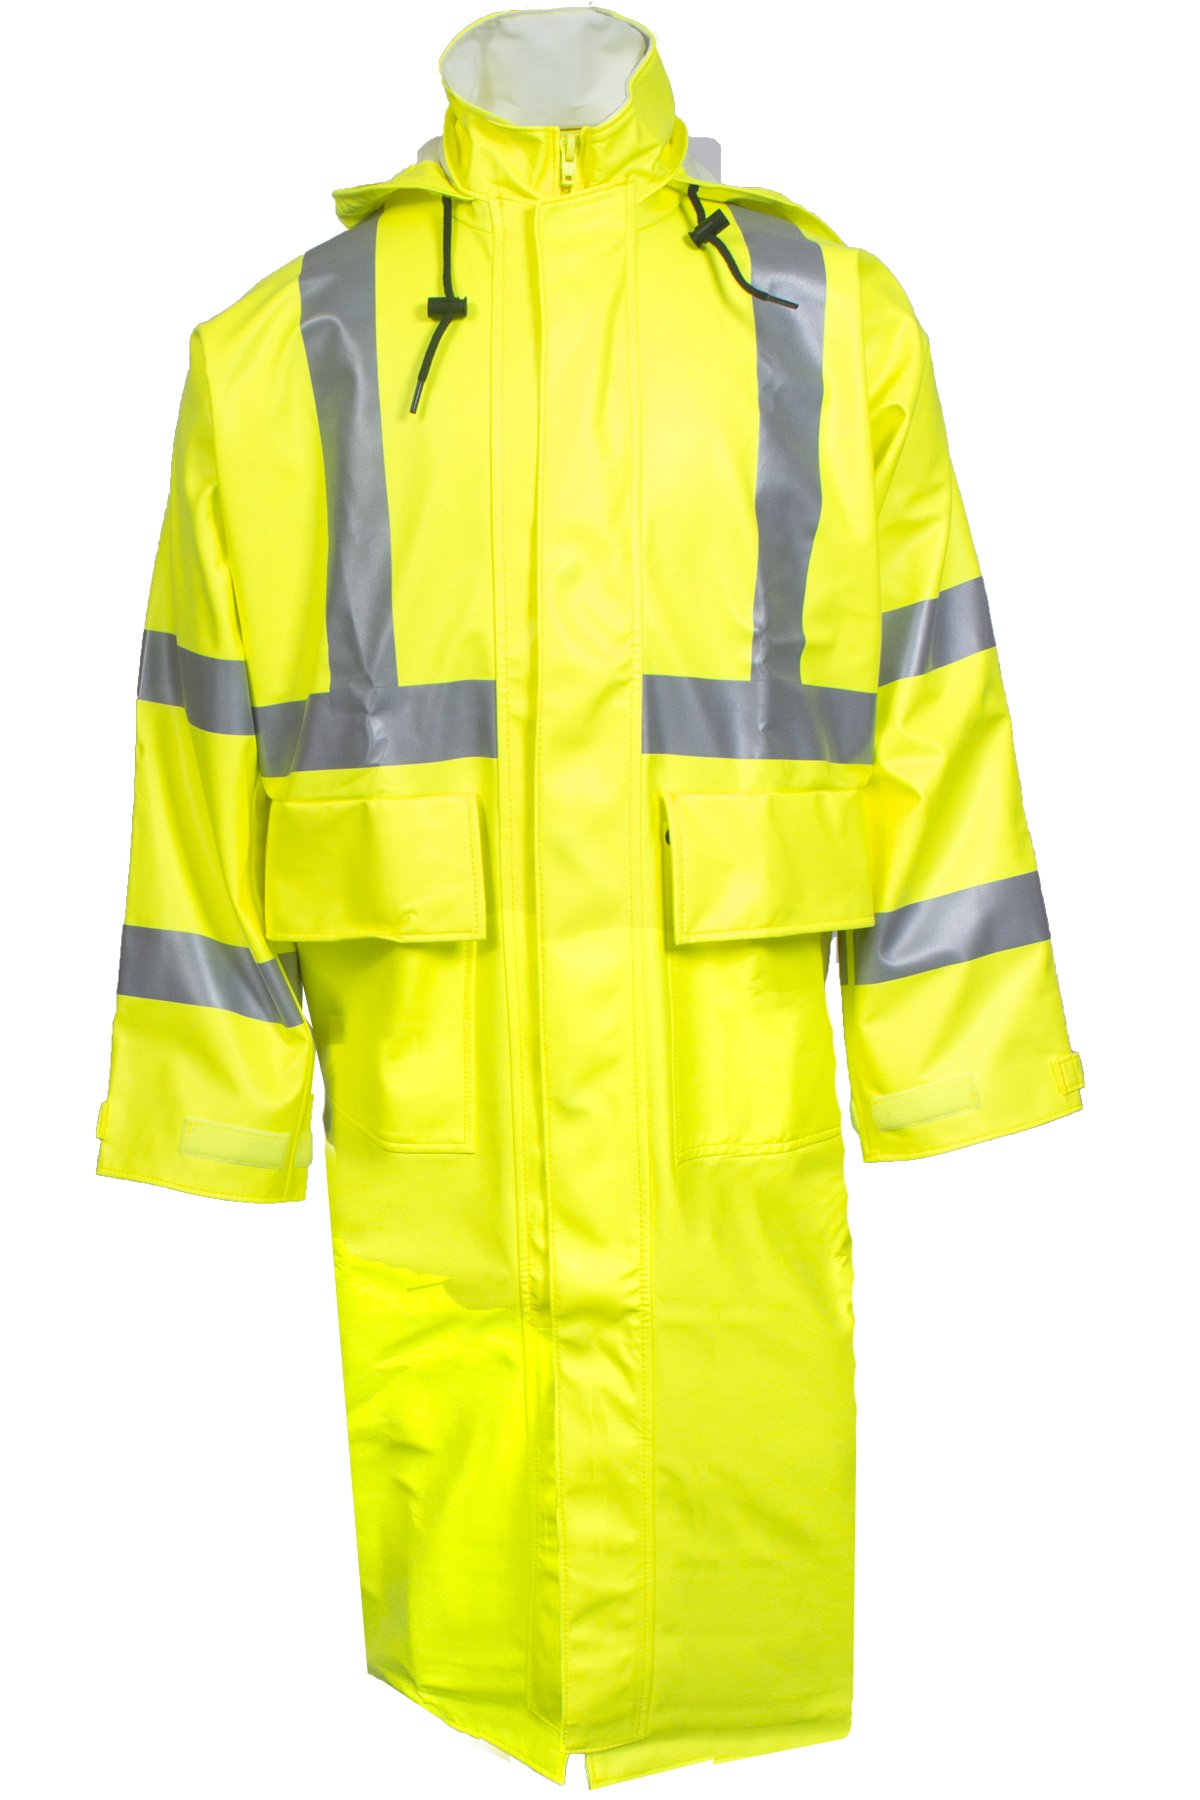 National Safety Apparel R31RL06XL Arc H2O FR Trench Coat, Class 3, X-Large, Fluorescent Yellow